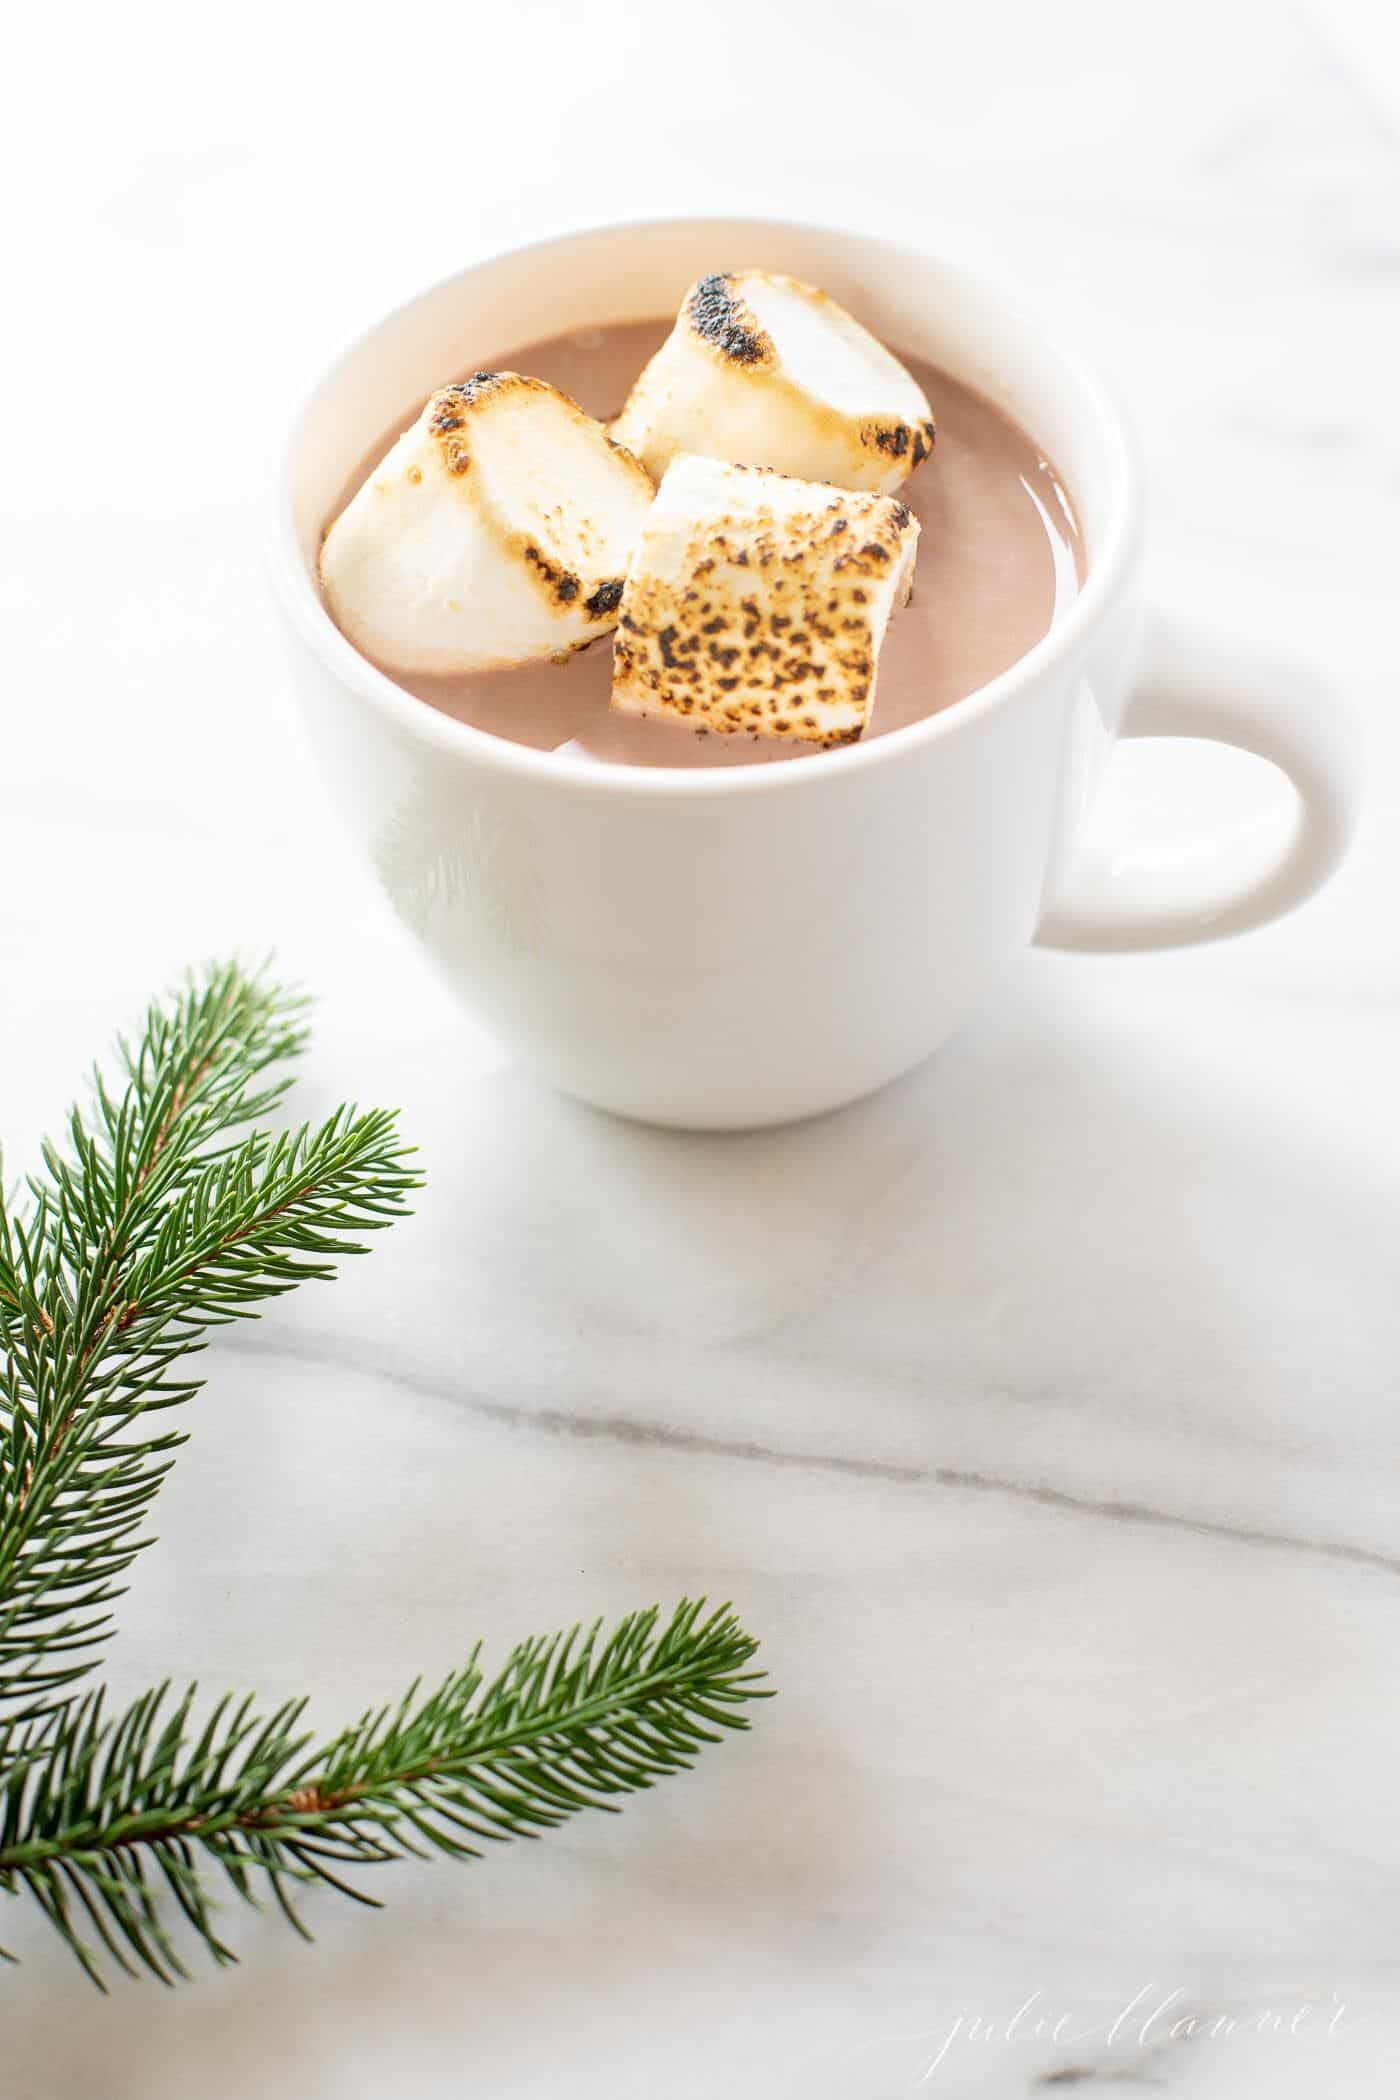 A white mug full of spiked hot chocolate Christmas cocktail, topped with toasted marshmallows.